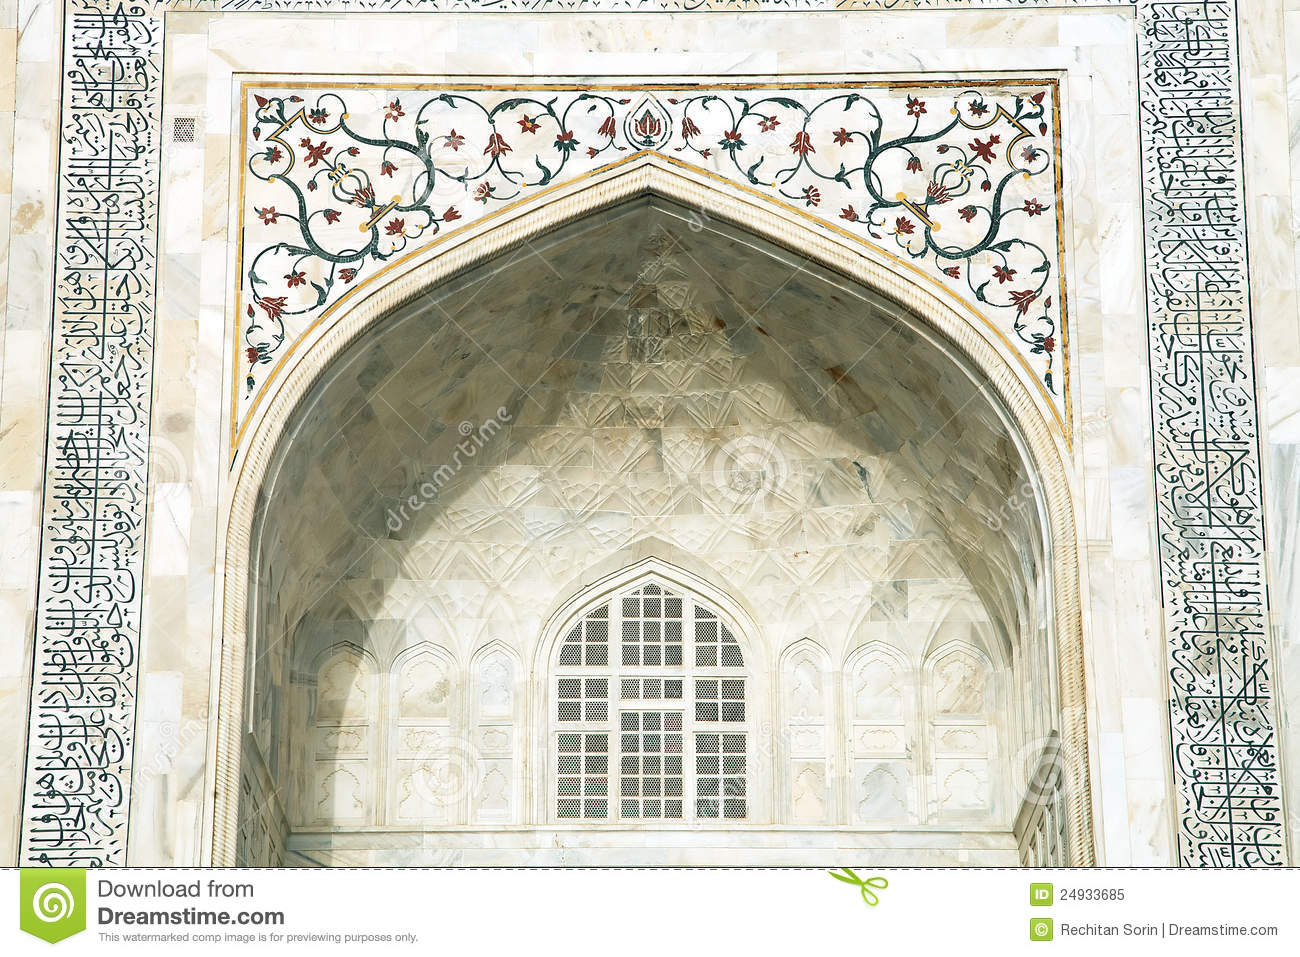 Taj mahal royalty free stock photo image 24933685 for Taj mahal exterior design